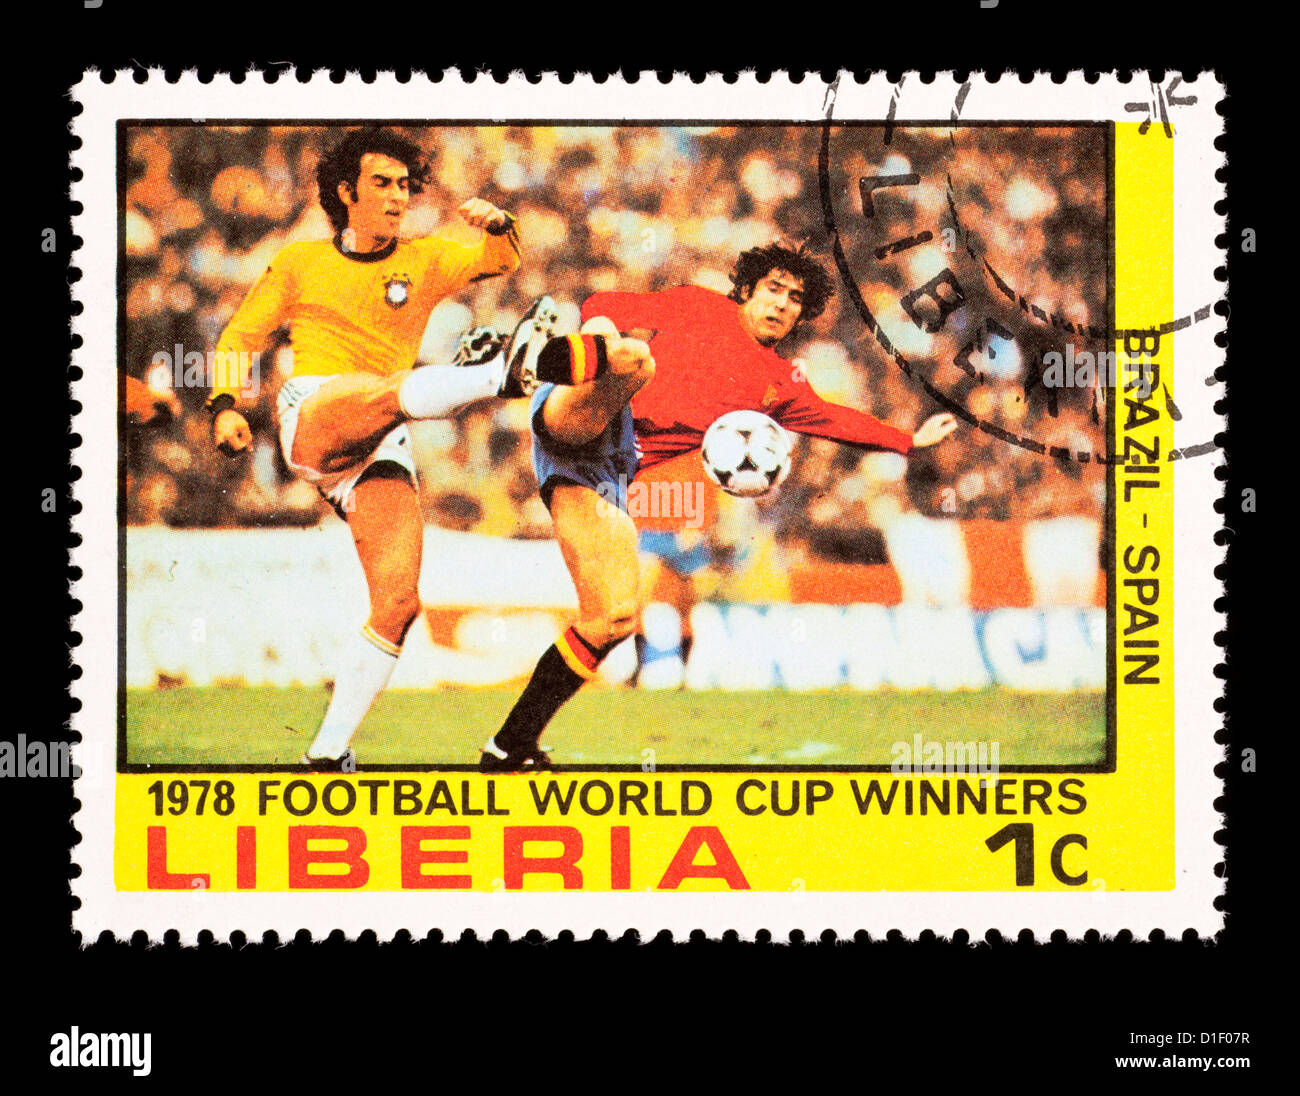 Postage stamp from Liberia depicting the soccer players, issued for the 1978 Football World Cup. - Stock Image